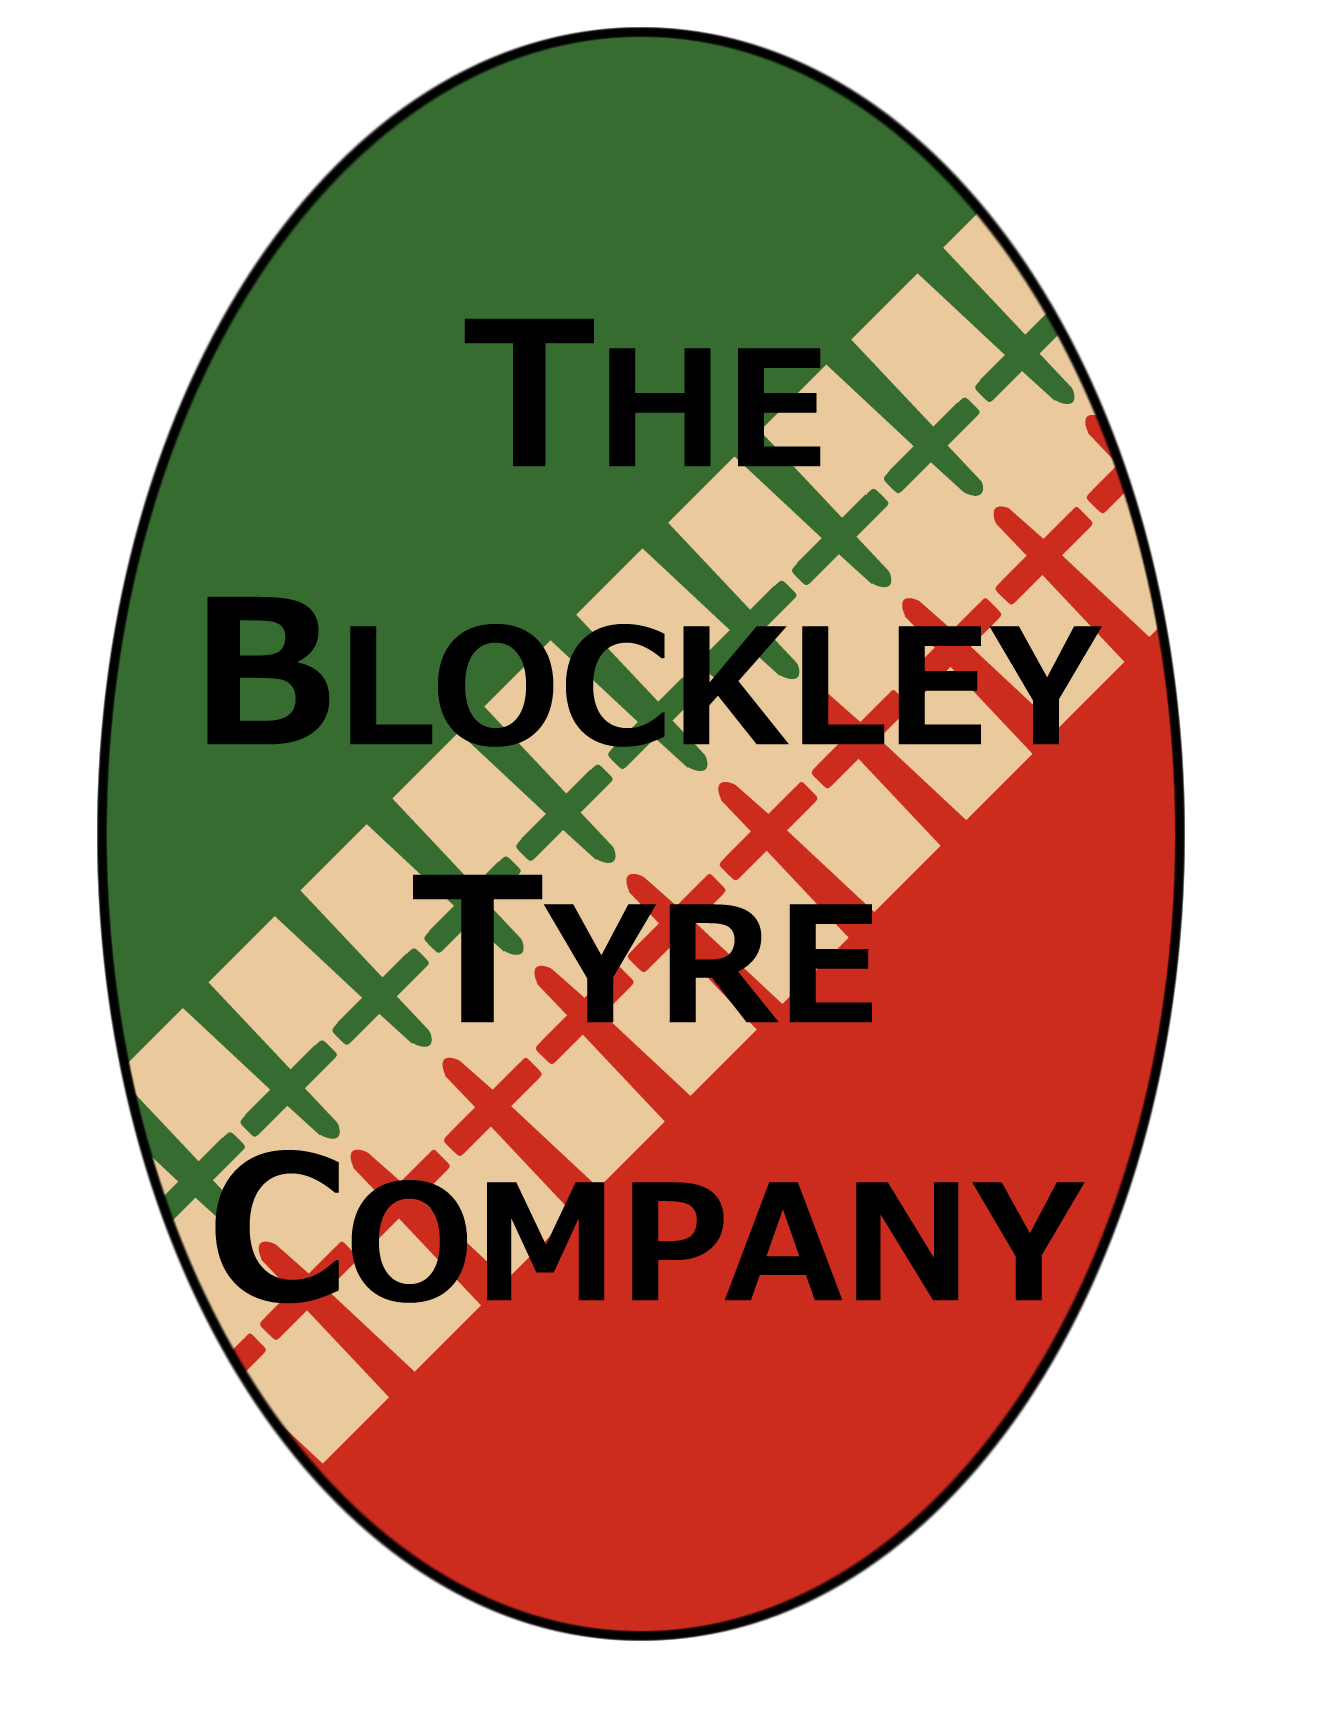 BLOCKLEY TYRE COMPANY